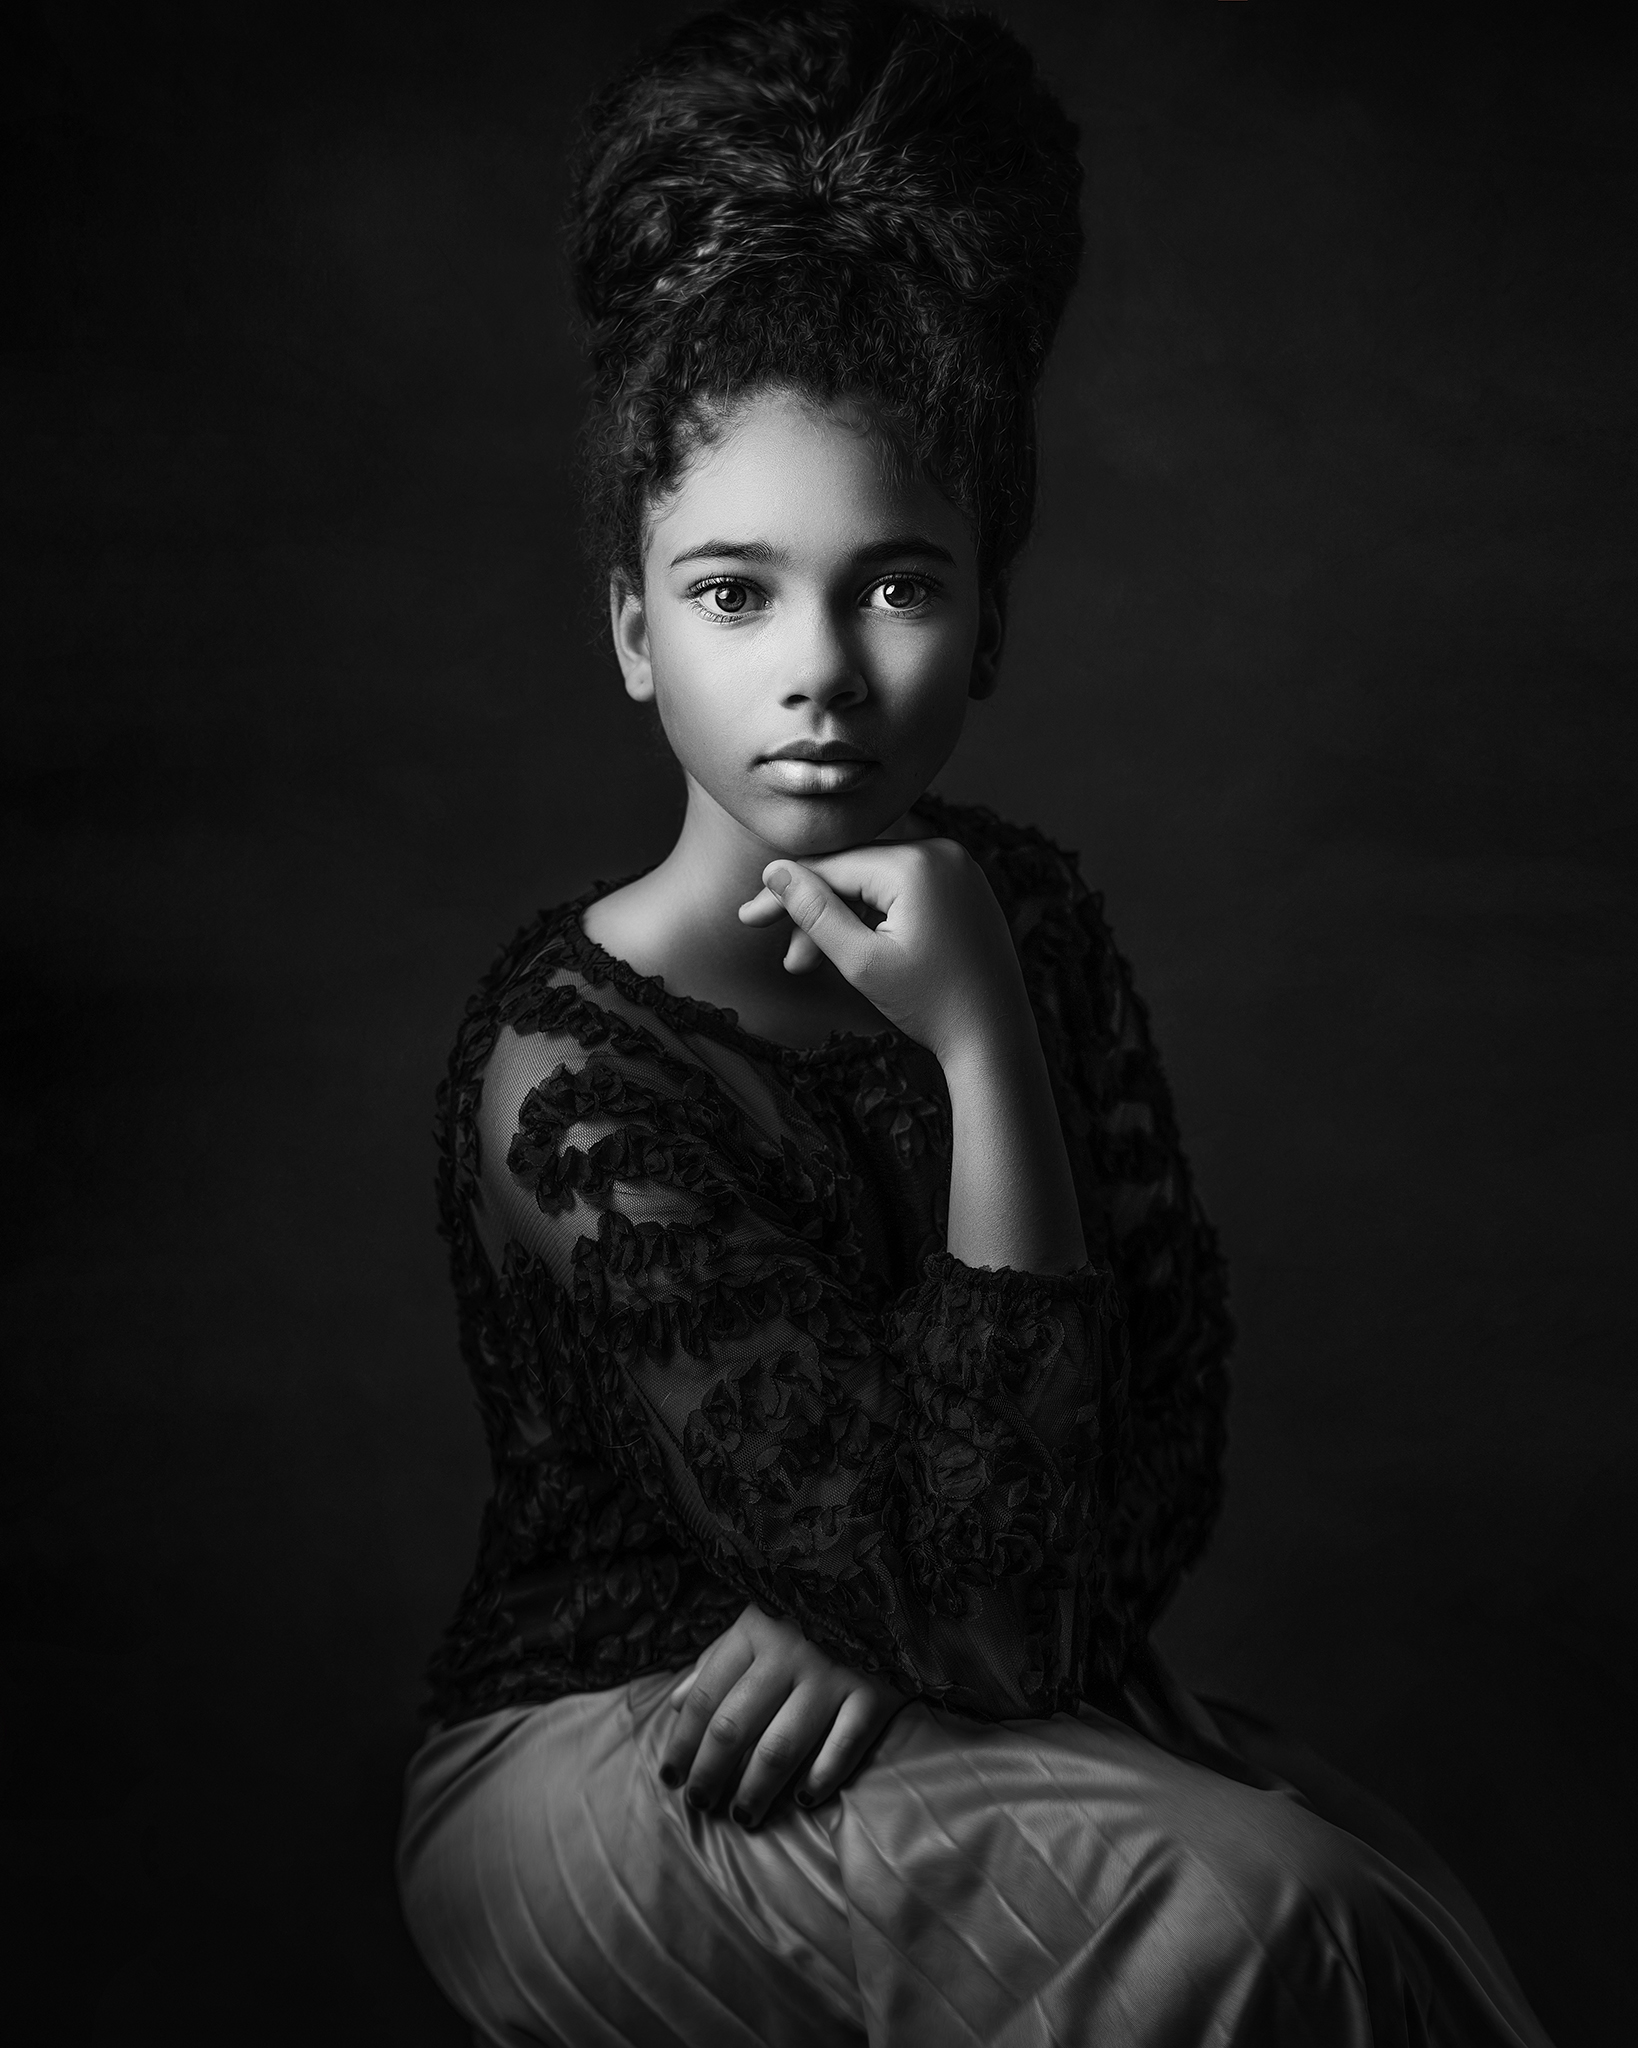 black and white portrait of Afro American girl sitting on a chair created with Rembrandt studio light set up